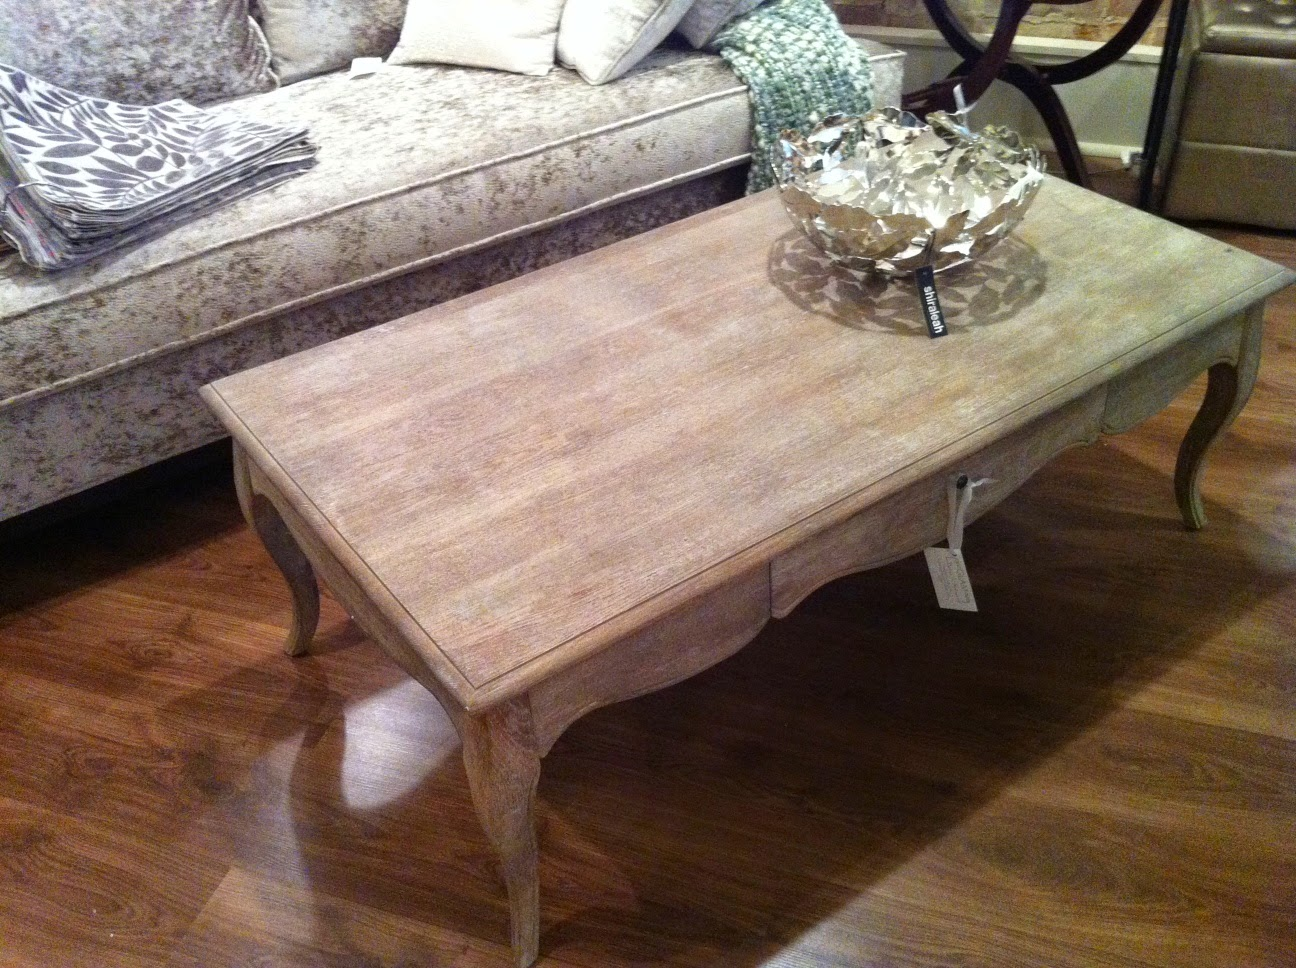 The Mesmerizing Distressed Wood Coffee Table Ideas Wallpapers